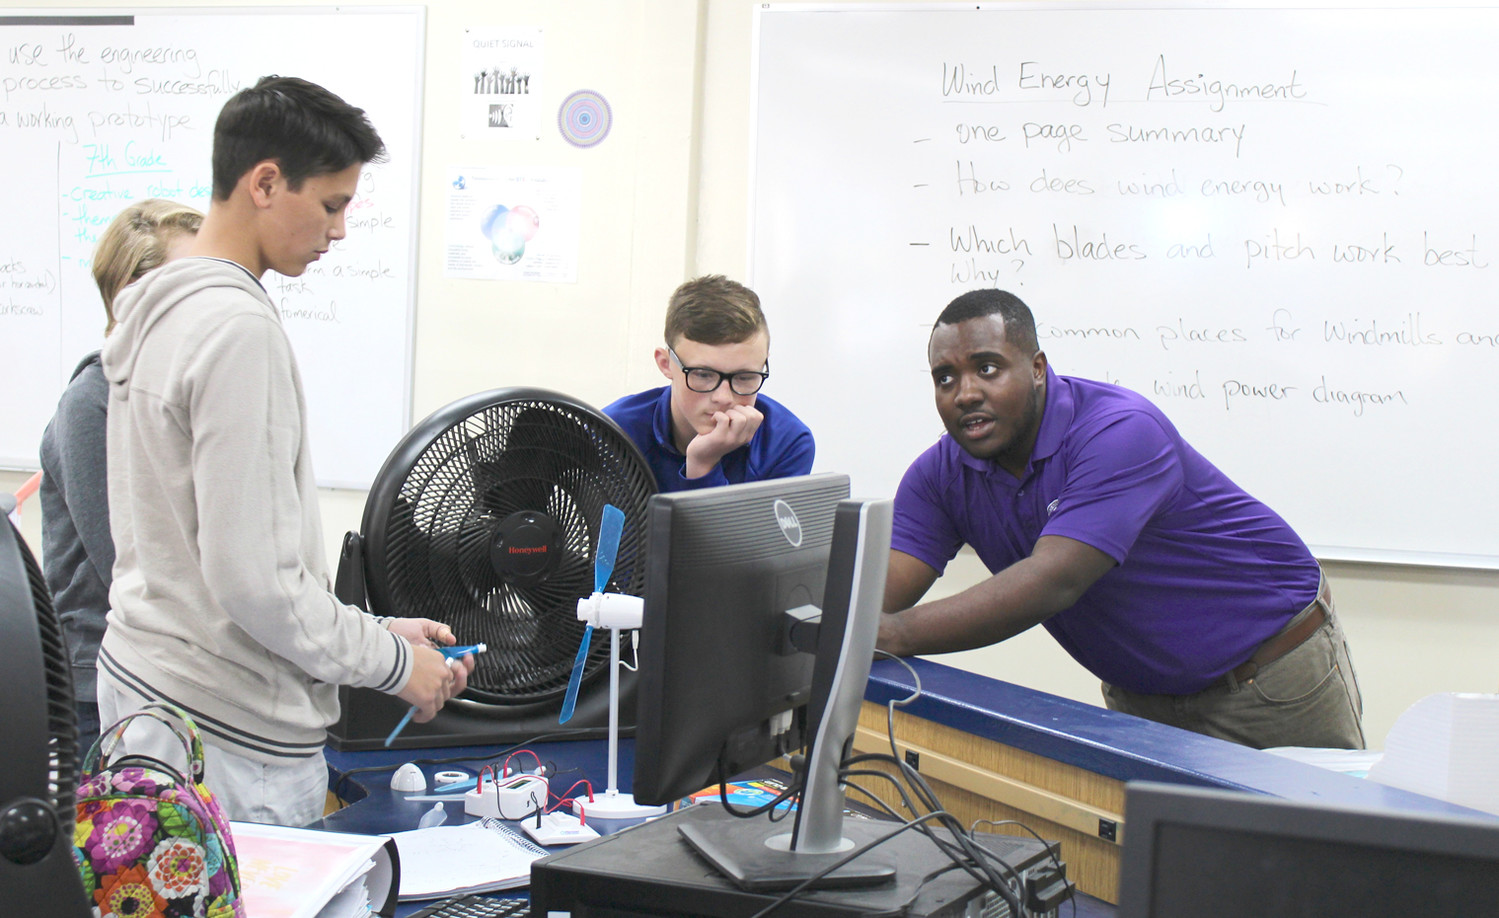 OMARI SMITH, a graduate student at Tennessee Tech University, helps Ocoee Middle School students with a wind power project. A similar project was made available to students at the Cleveland and Lake Forest middle schools.